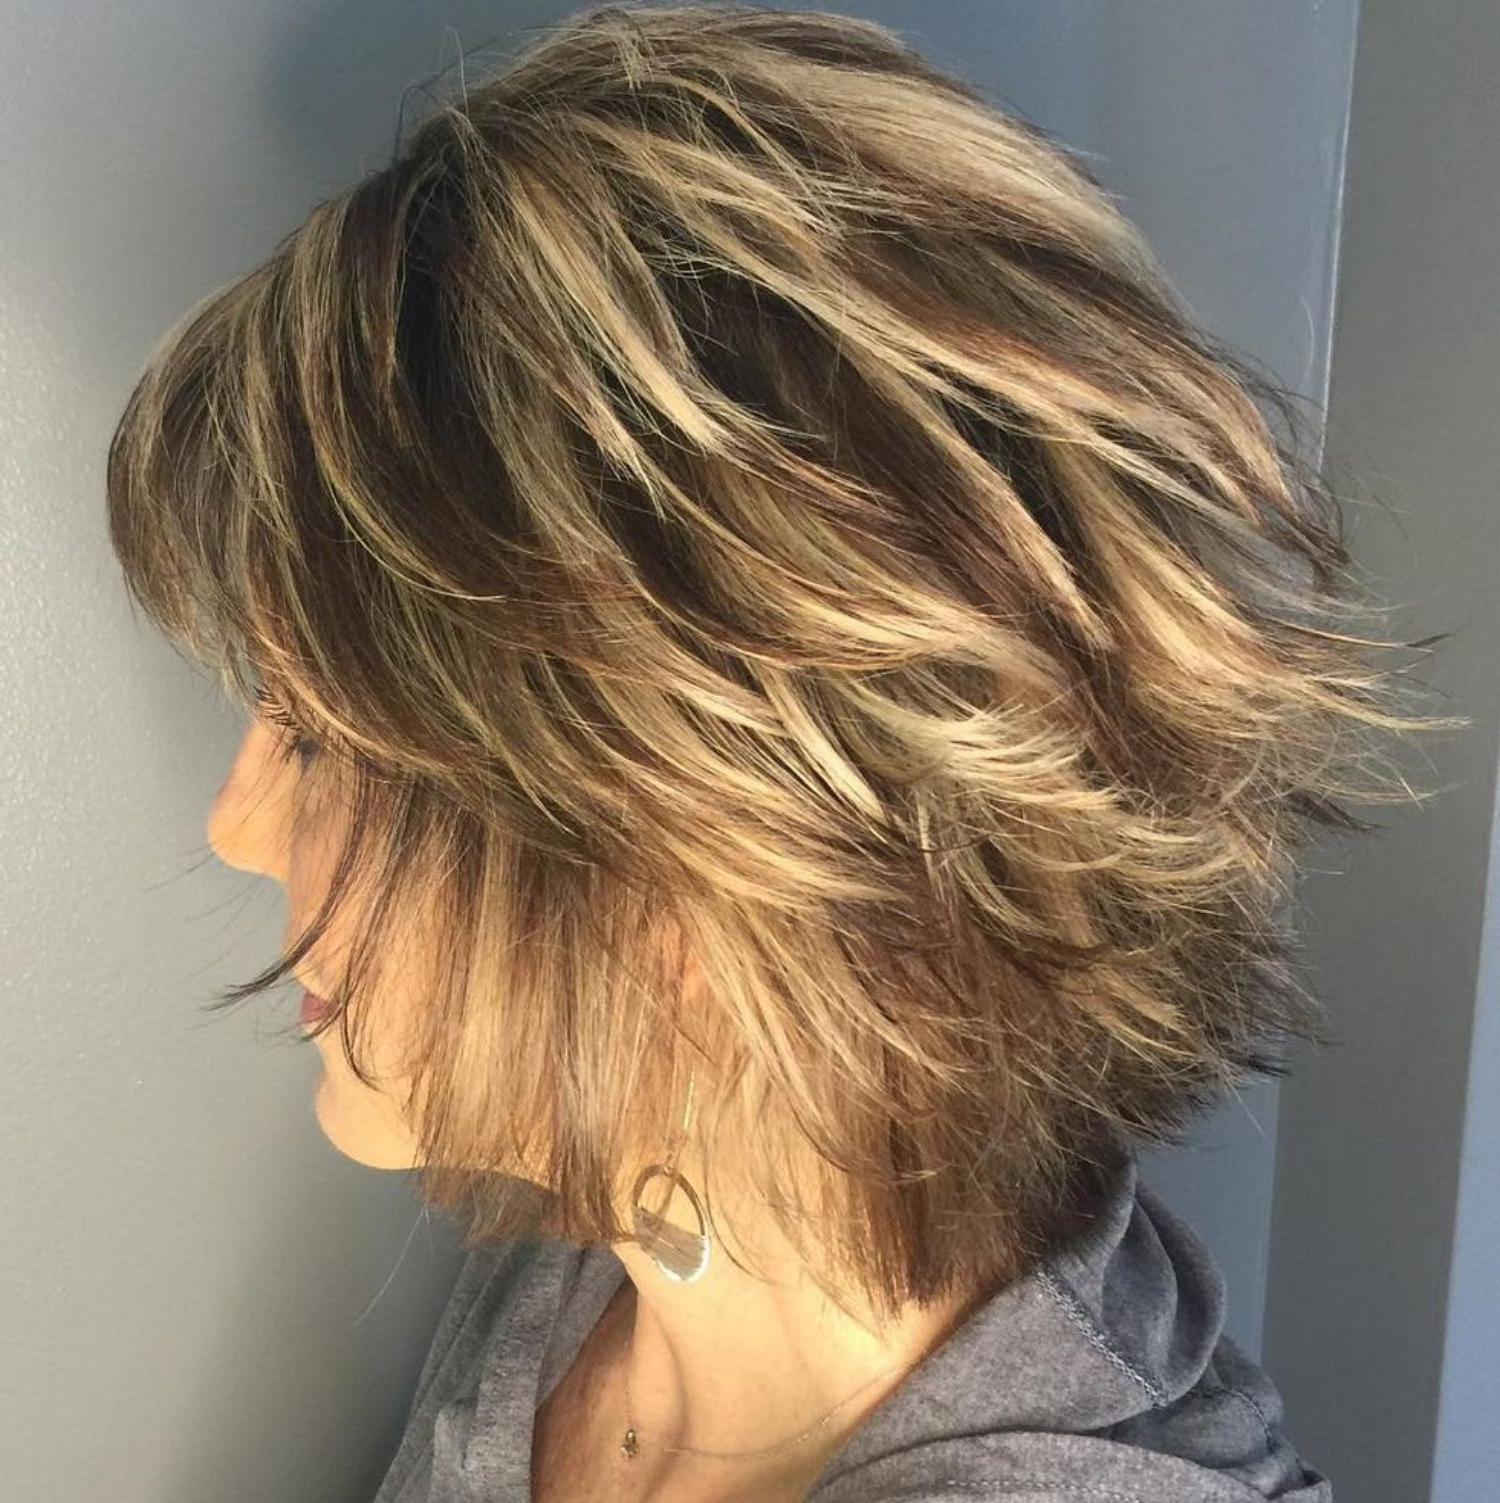 Best And Newest Shorter Shag Haircuts With Razored Layers With 80 Best Modern Hairstyles And Haircuts For Women Over 50 In (View 13 of 20)